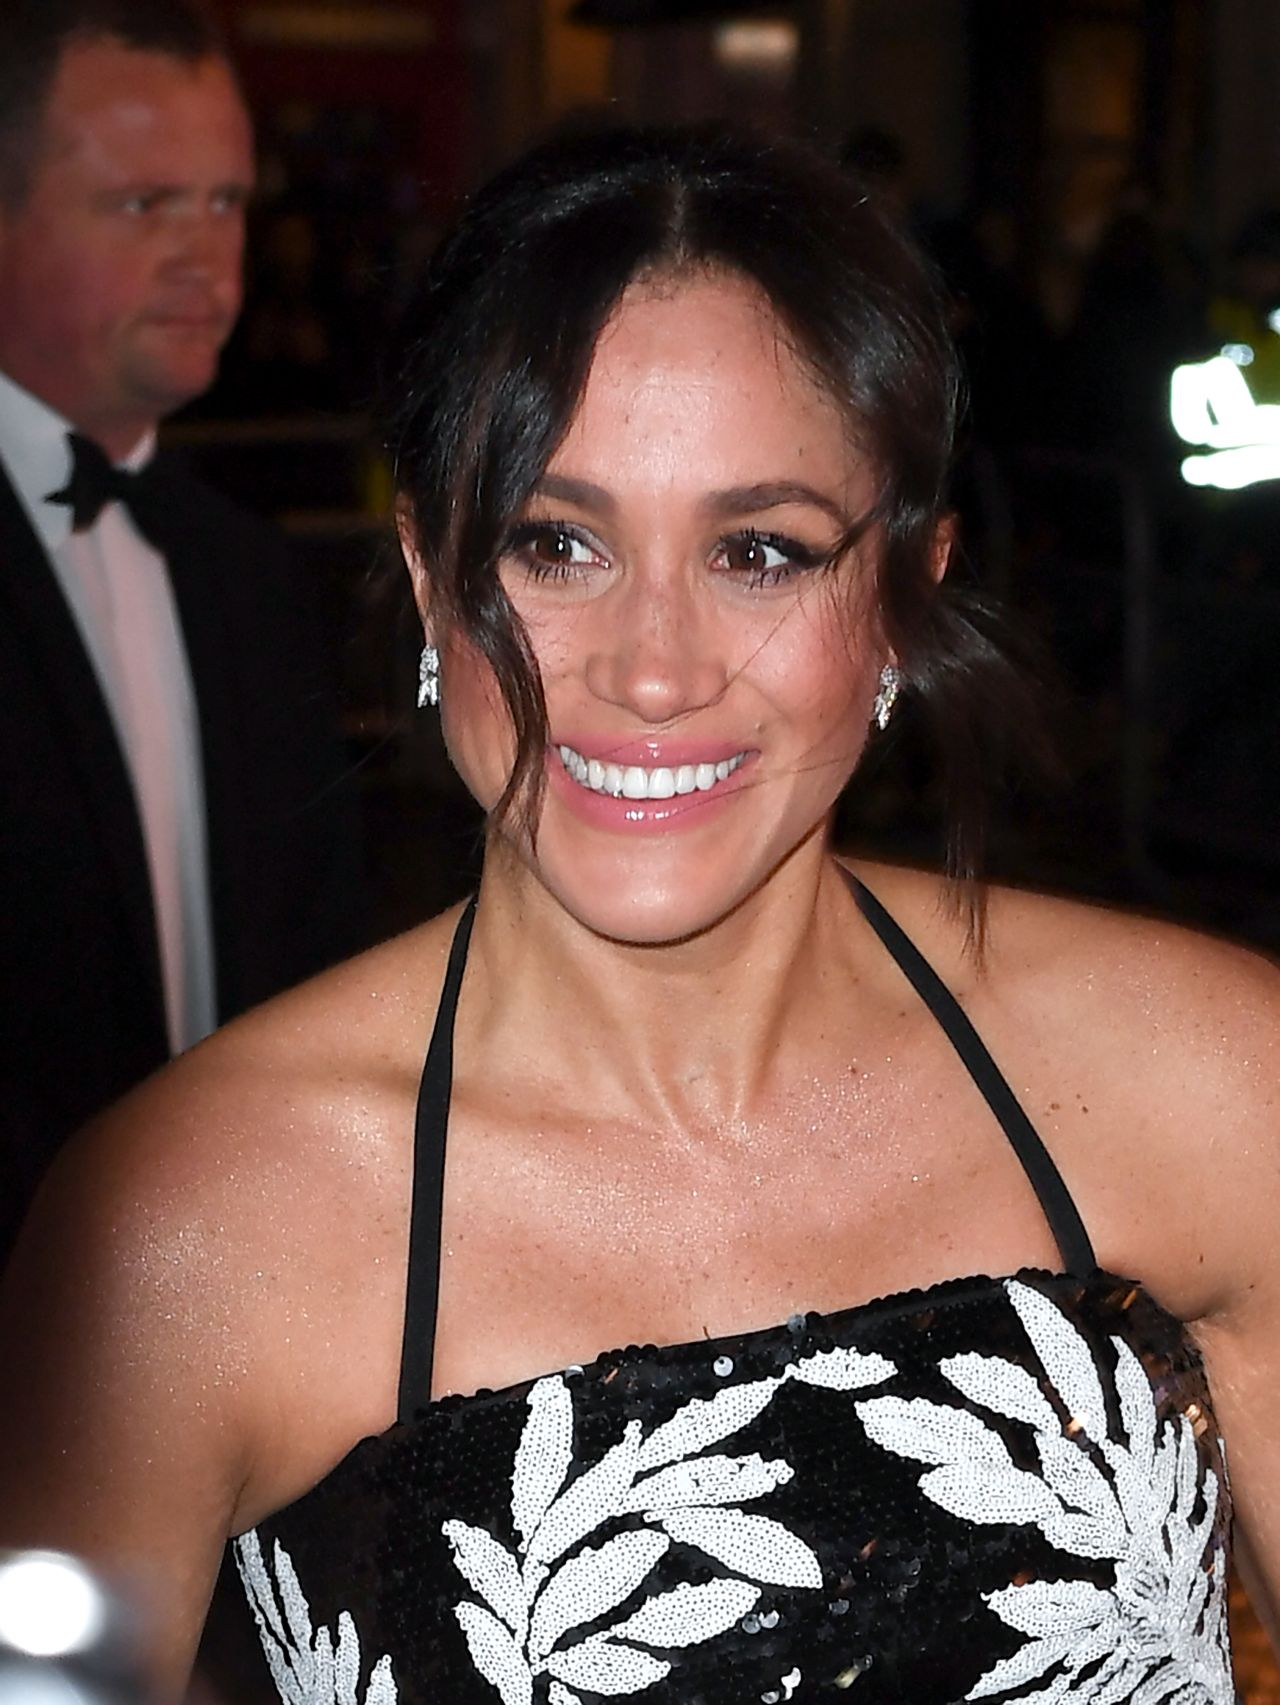 Meghan Markle photo #875839